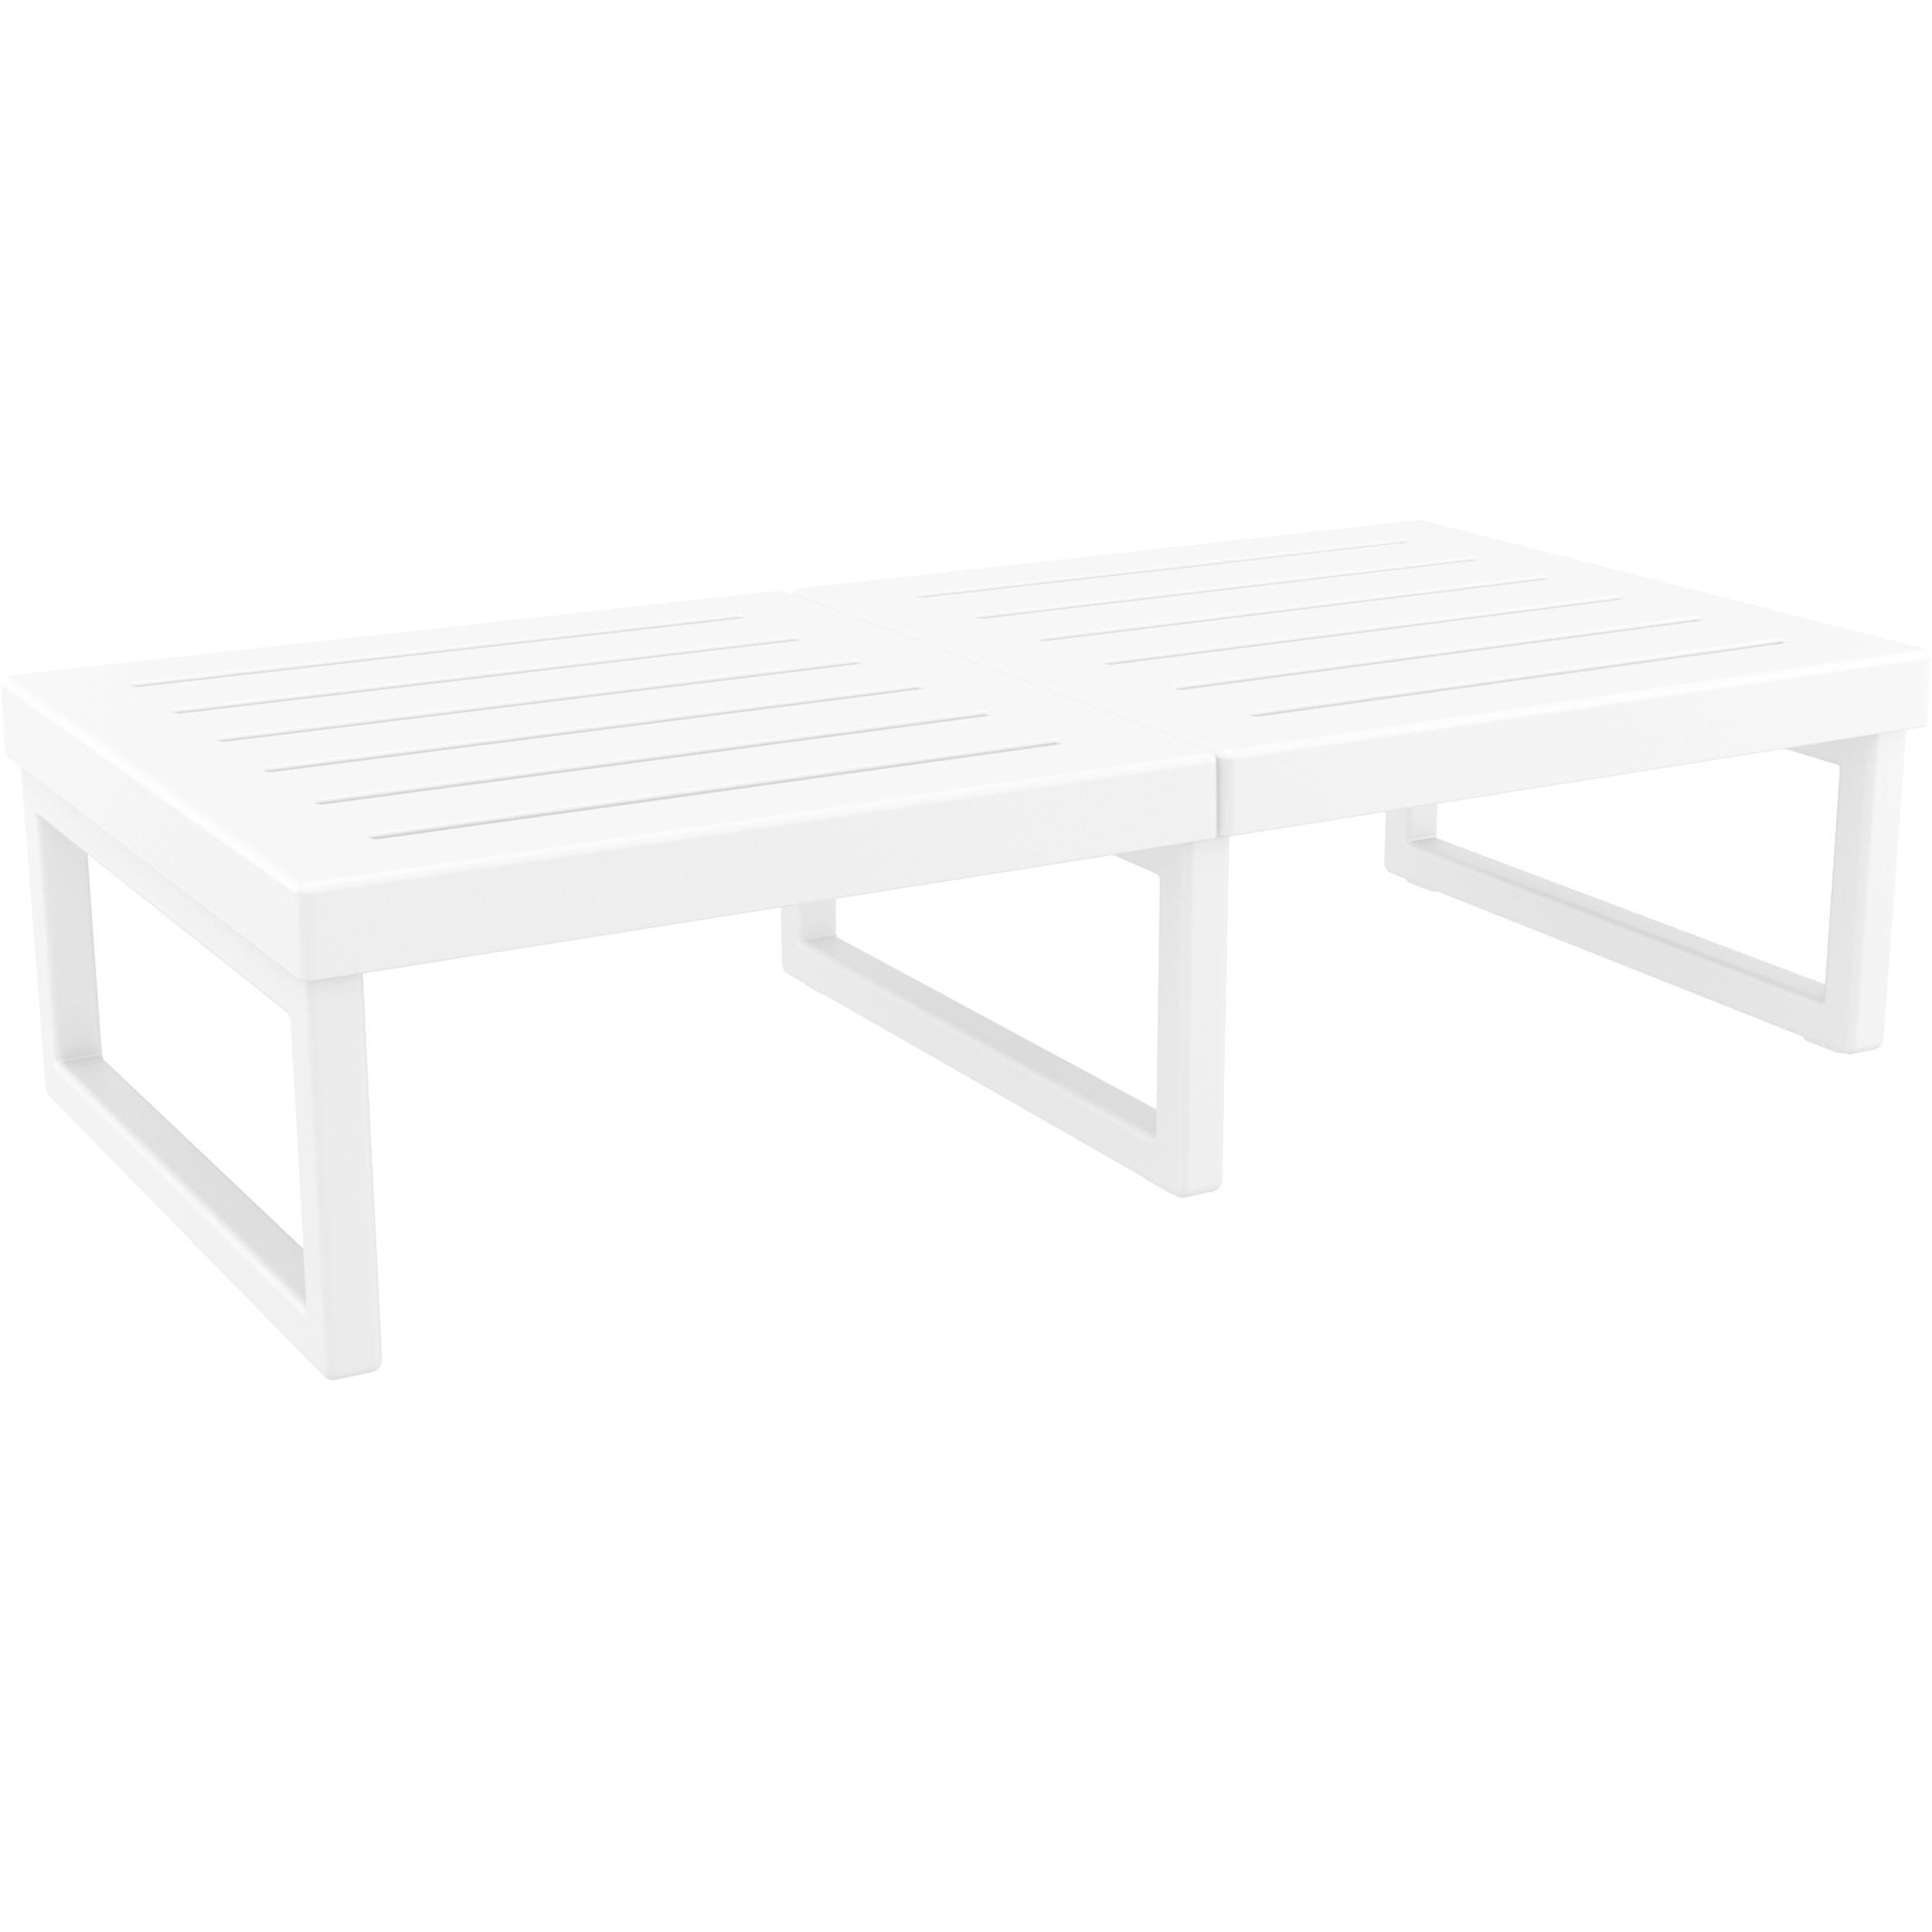 008 ml table xl white front side